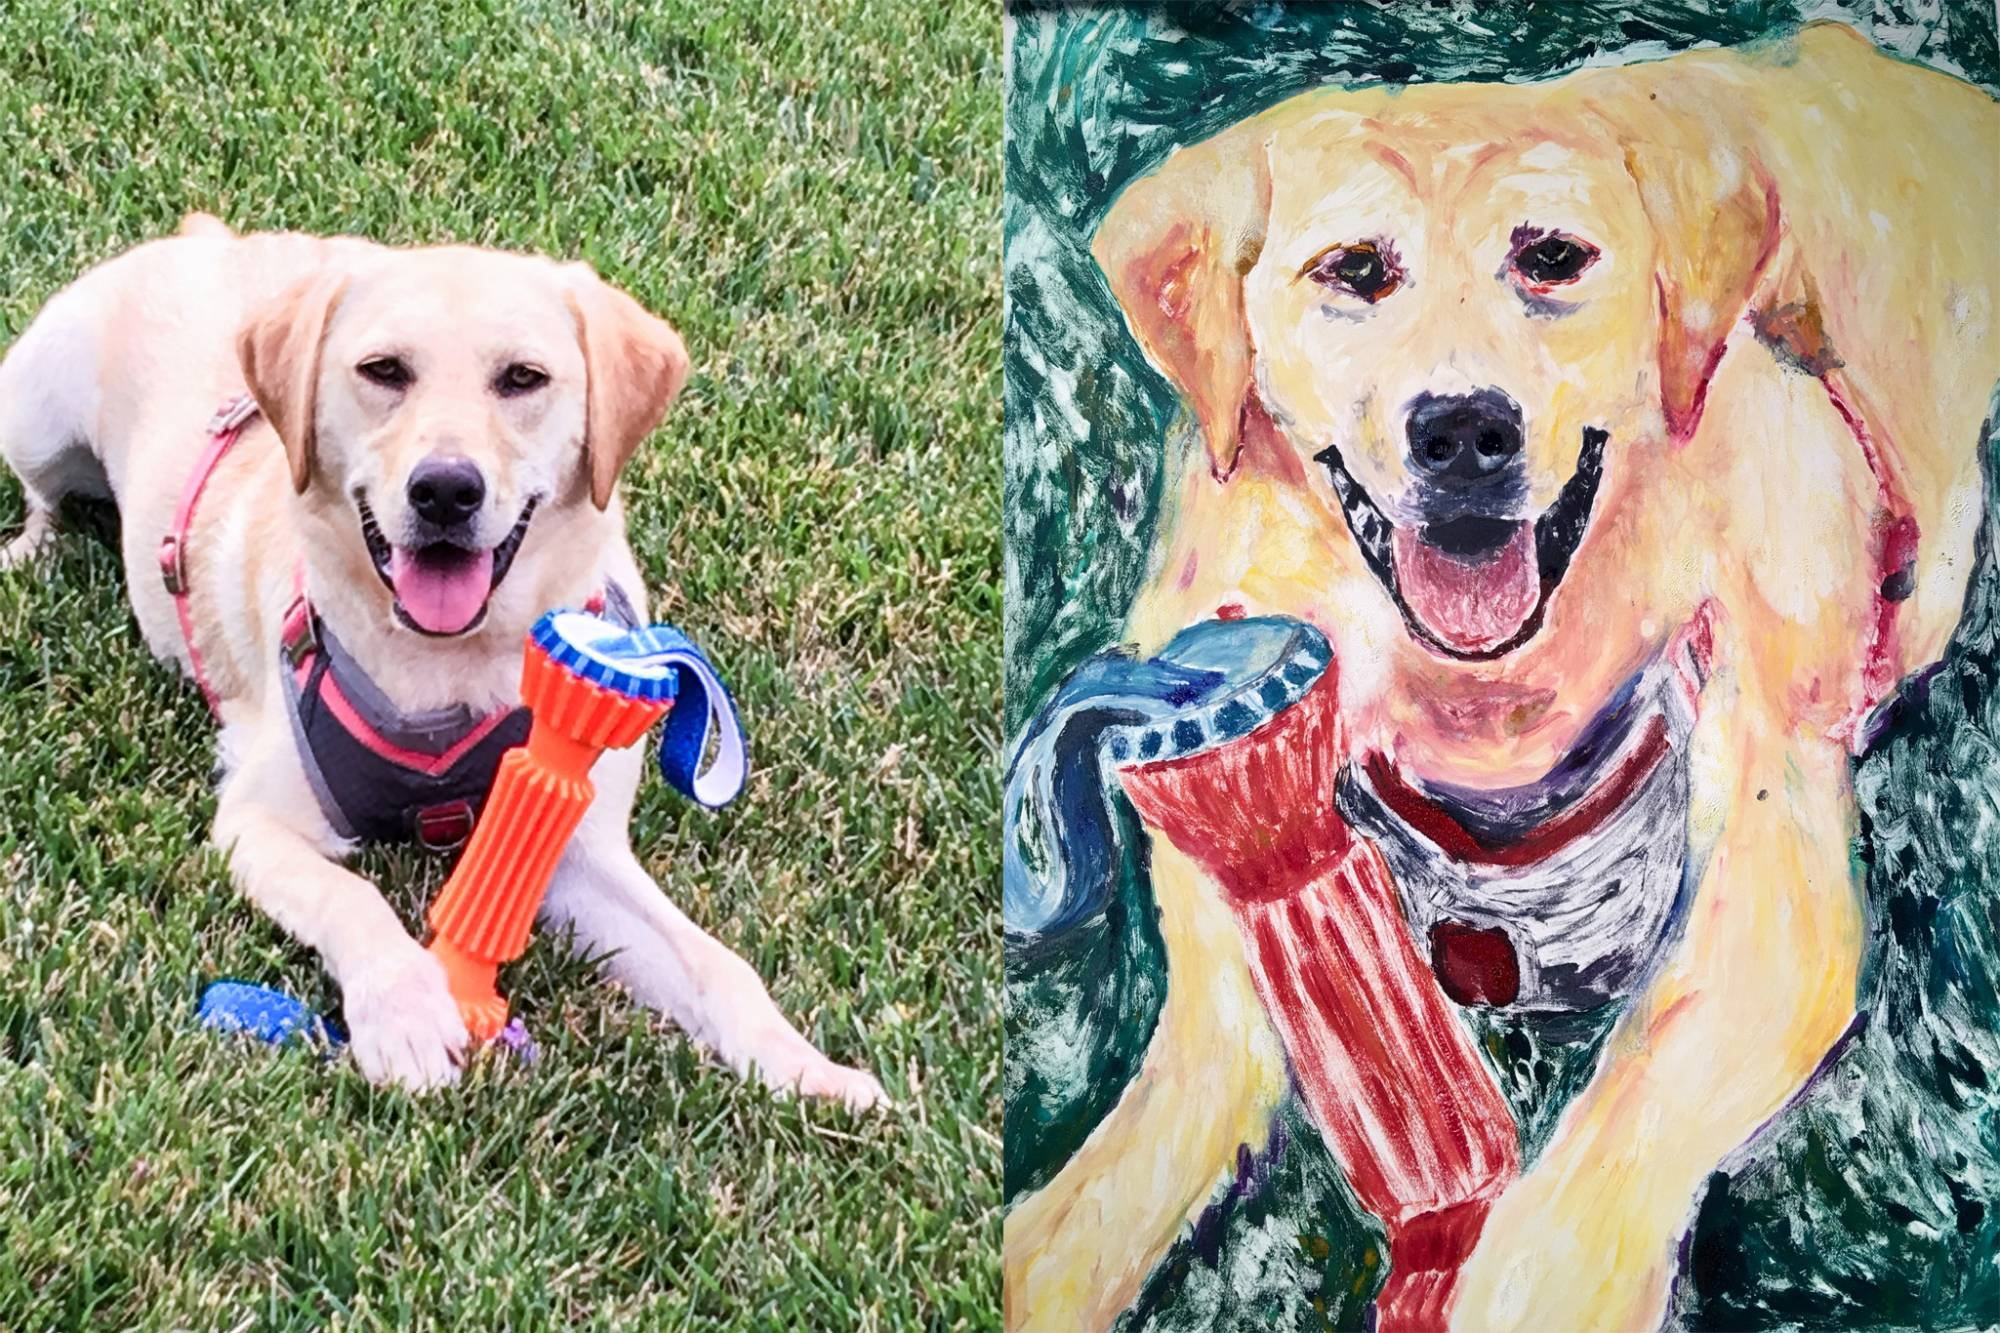 Bailey the dog next to his portrait